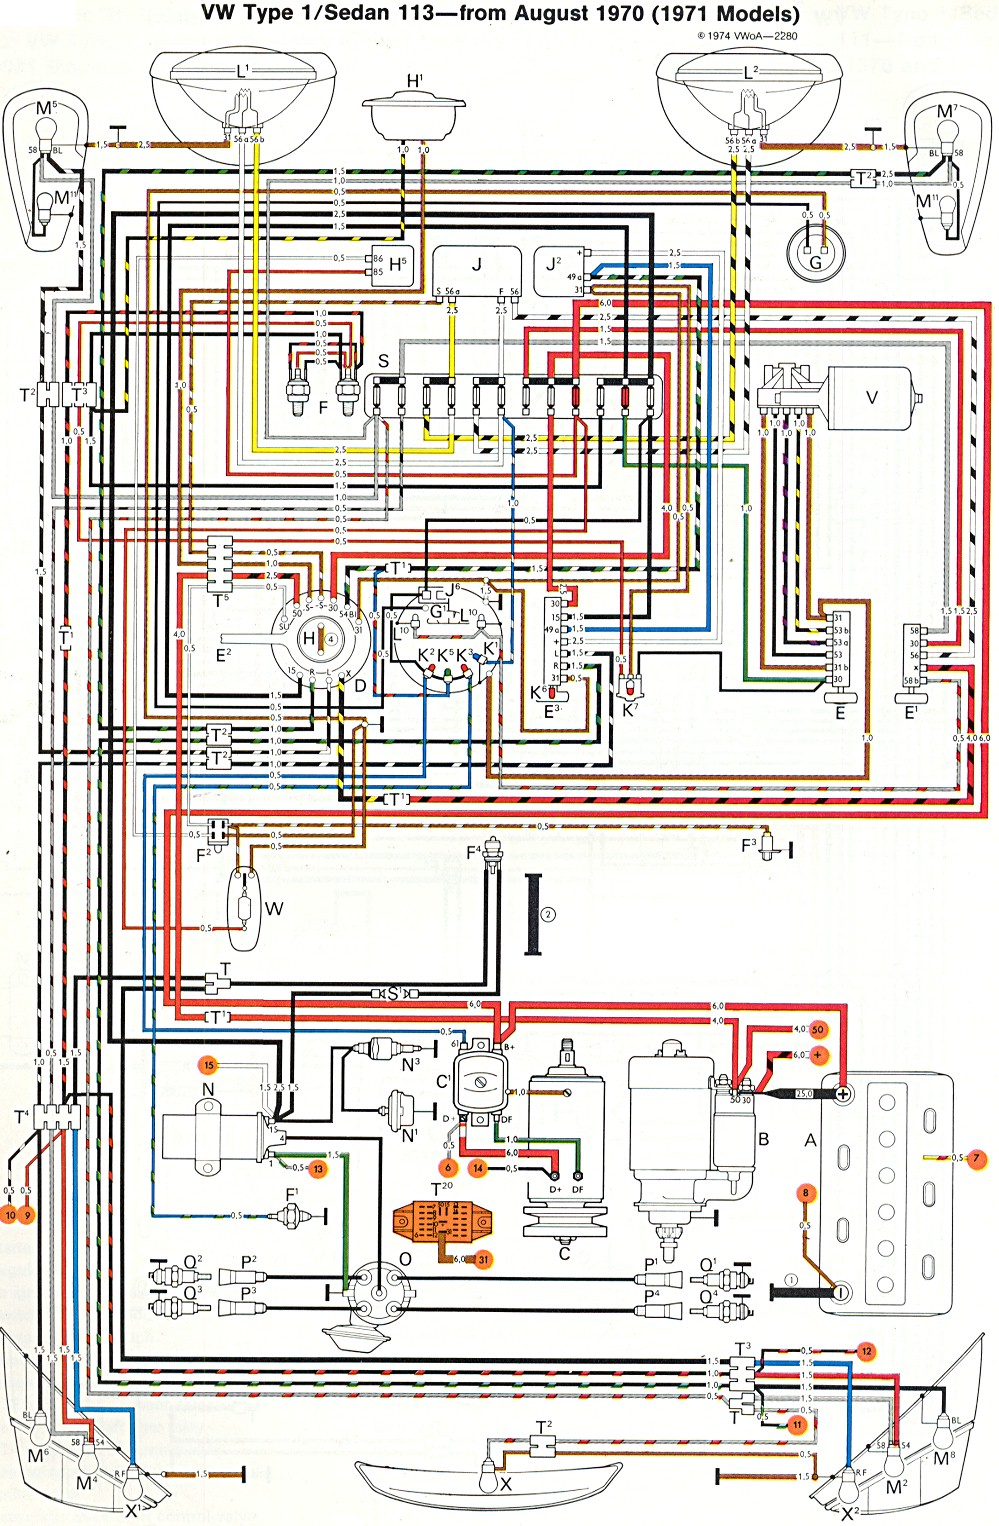 bug_super_71 1971 super beetle wiring diagram thegoldenbug com 1974 vw beetle wiring diagram at virtualis.co